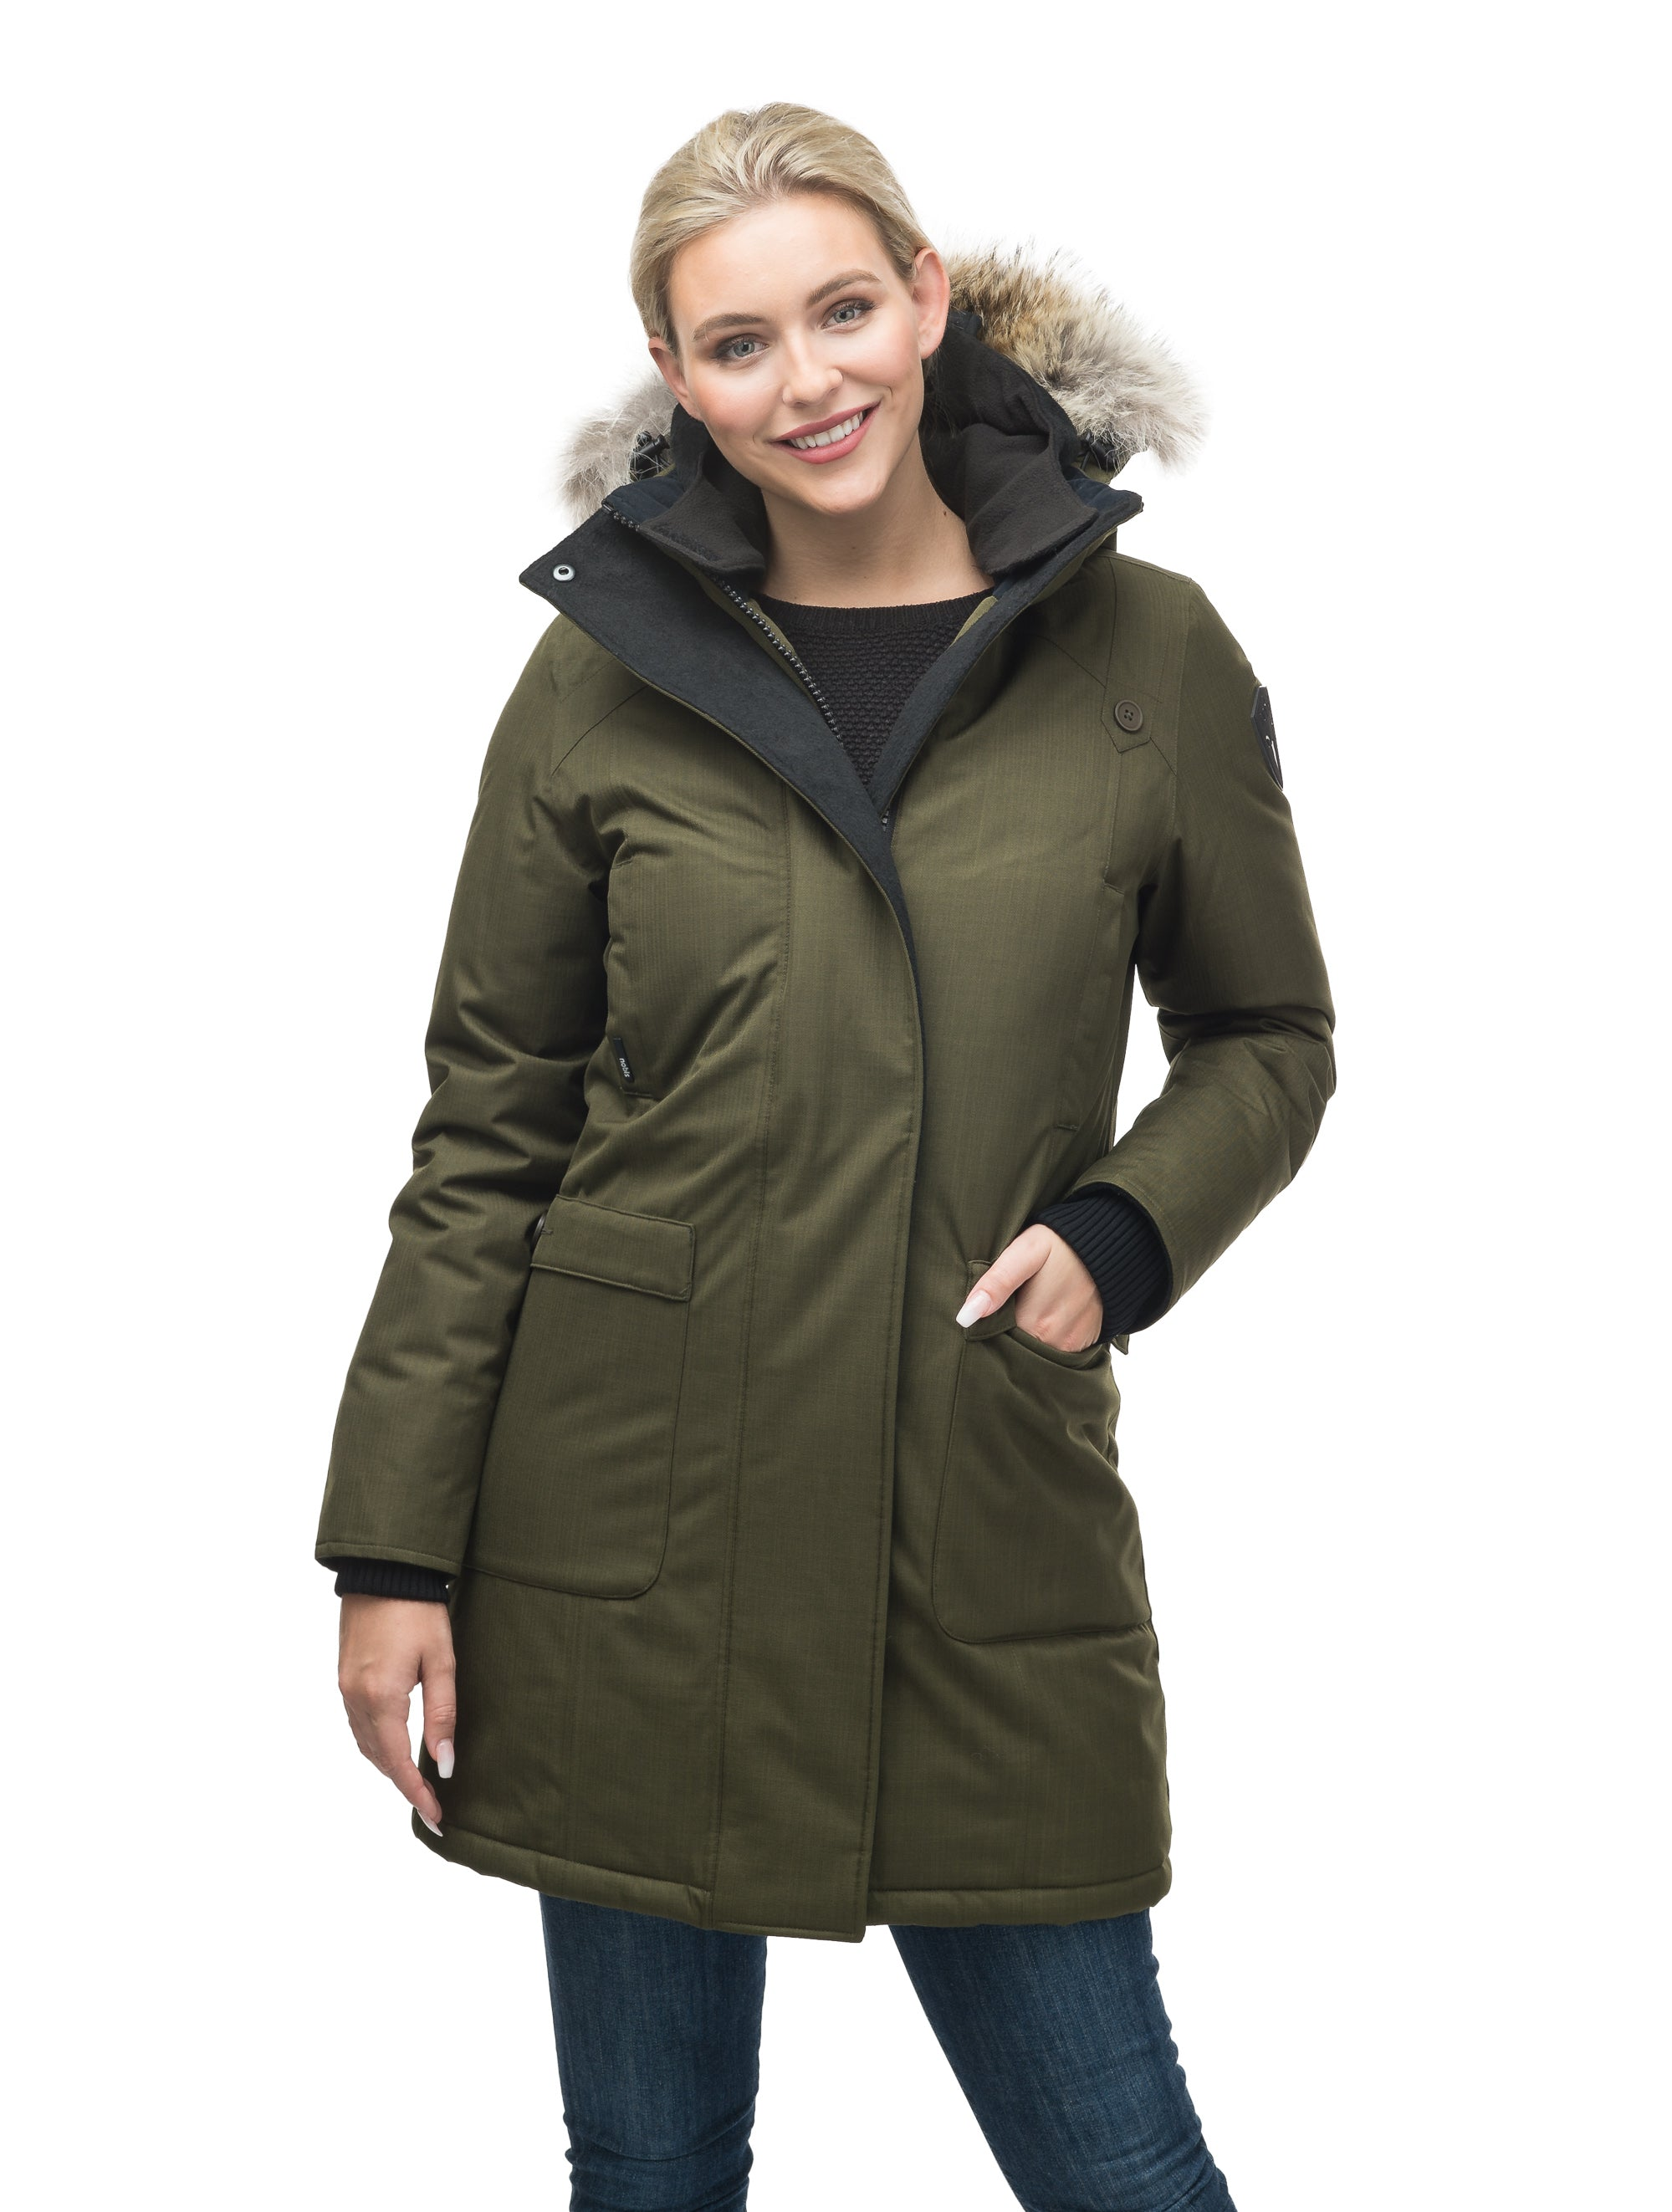 nobis-womens-merideth-ladies-parka-jackets-crosshatch-fatigue-main